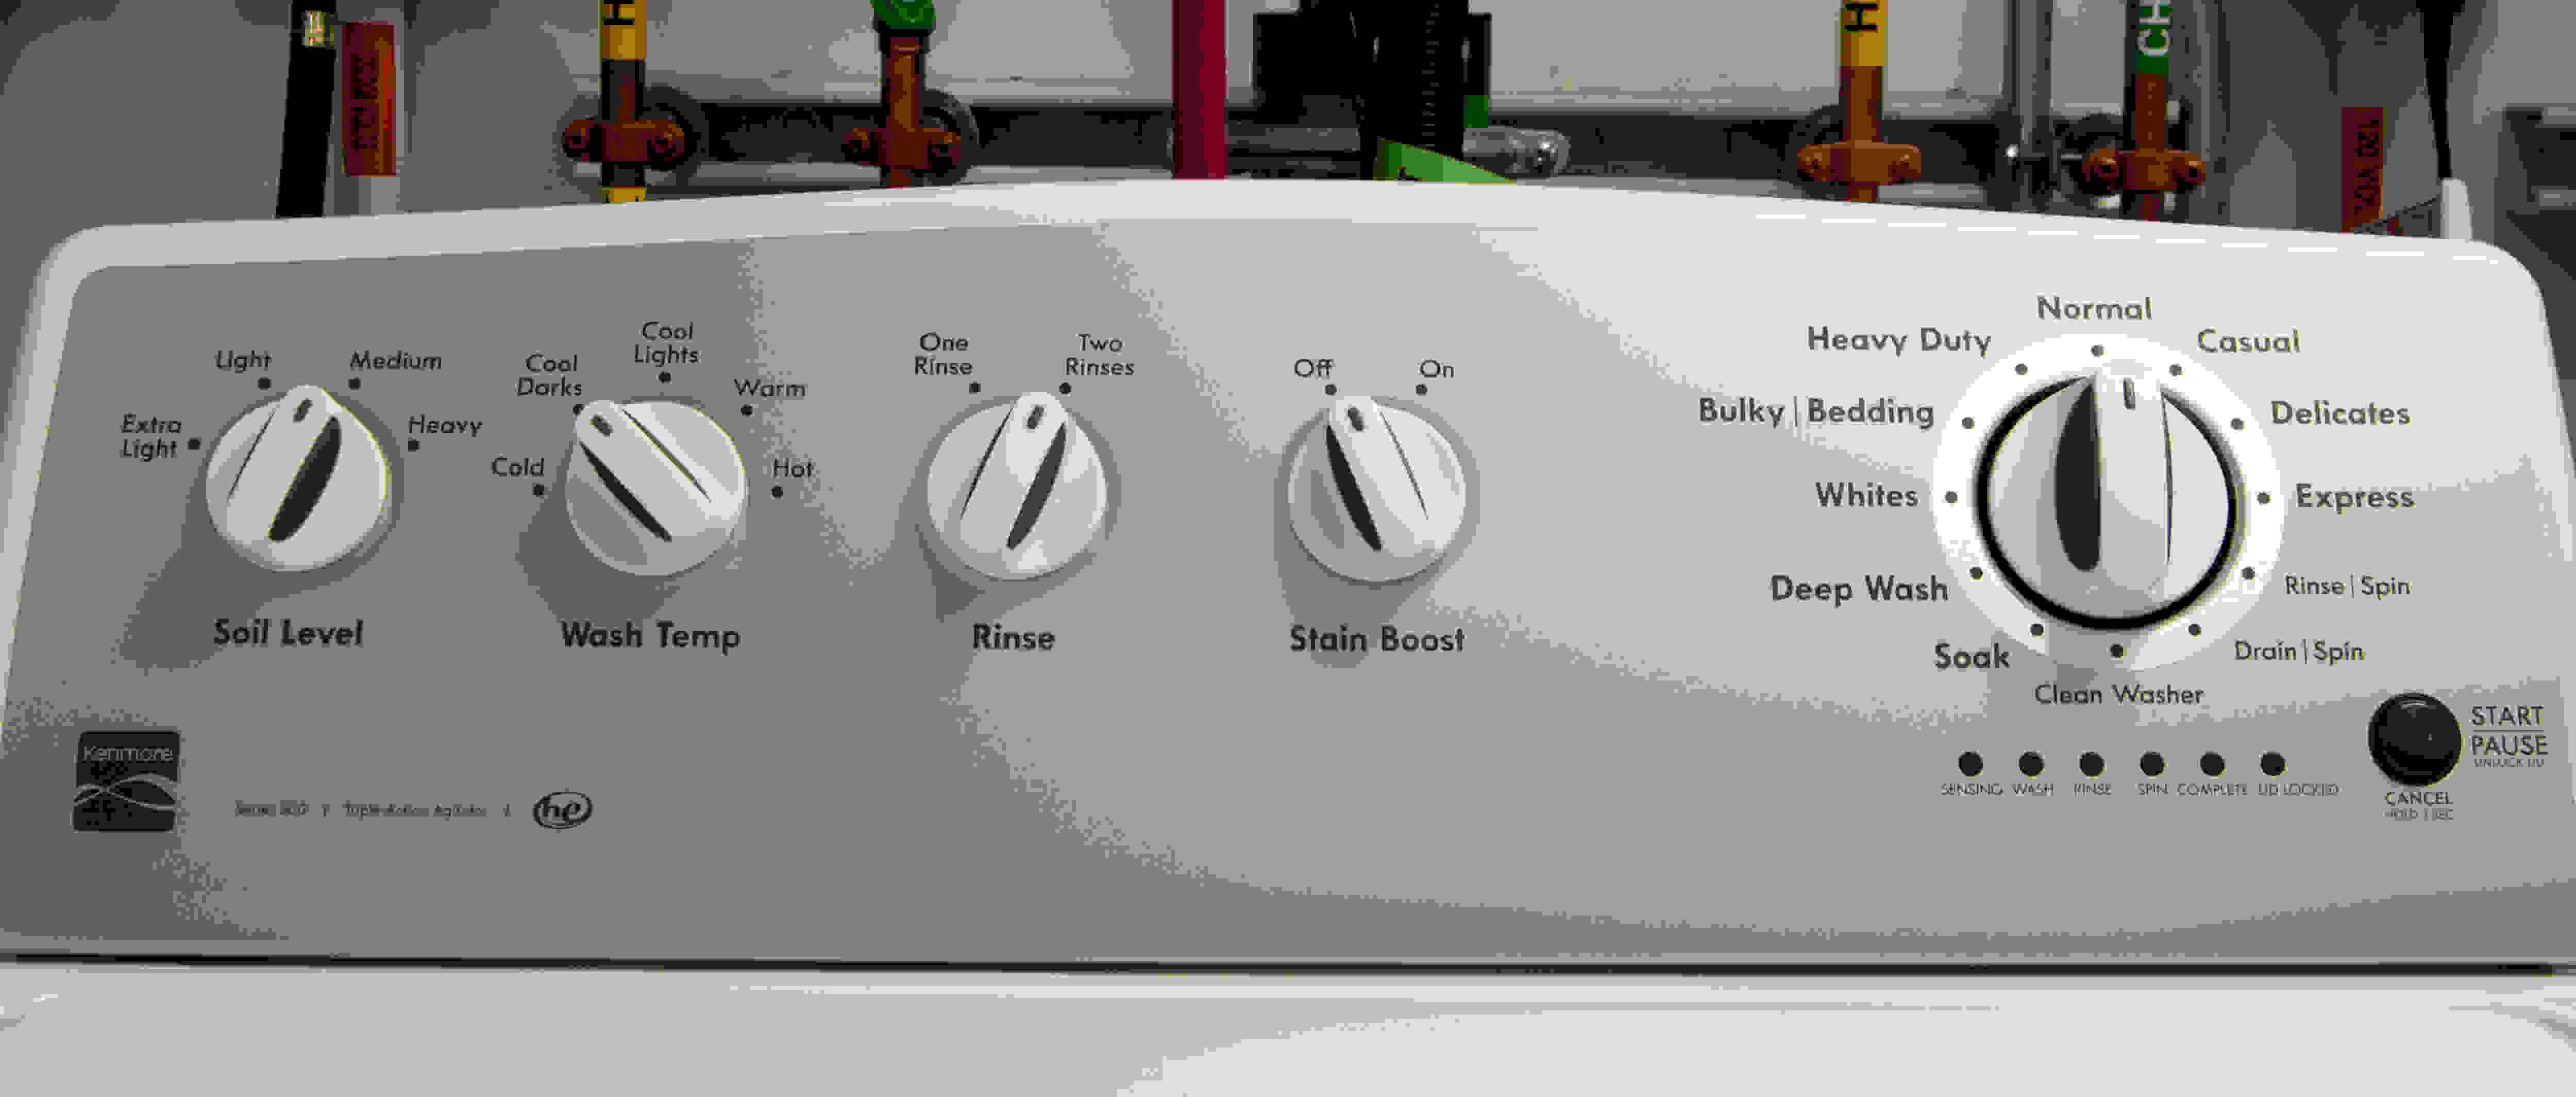 Old fashion controls that many will be familiar with